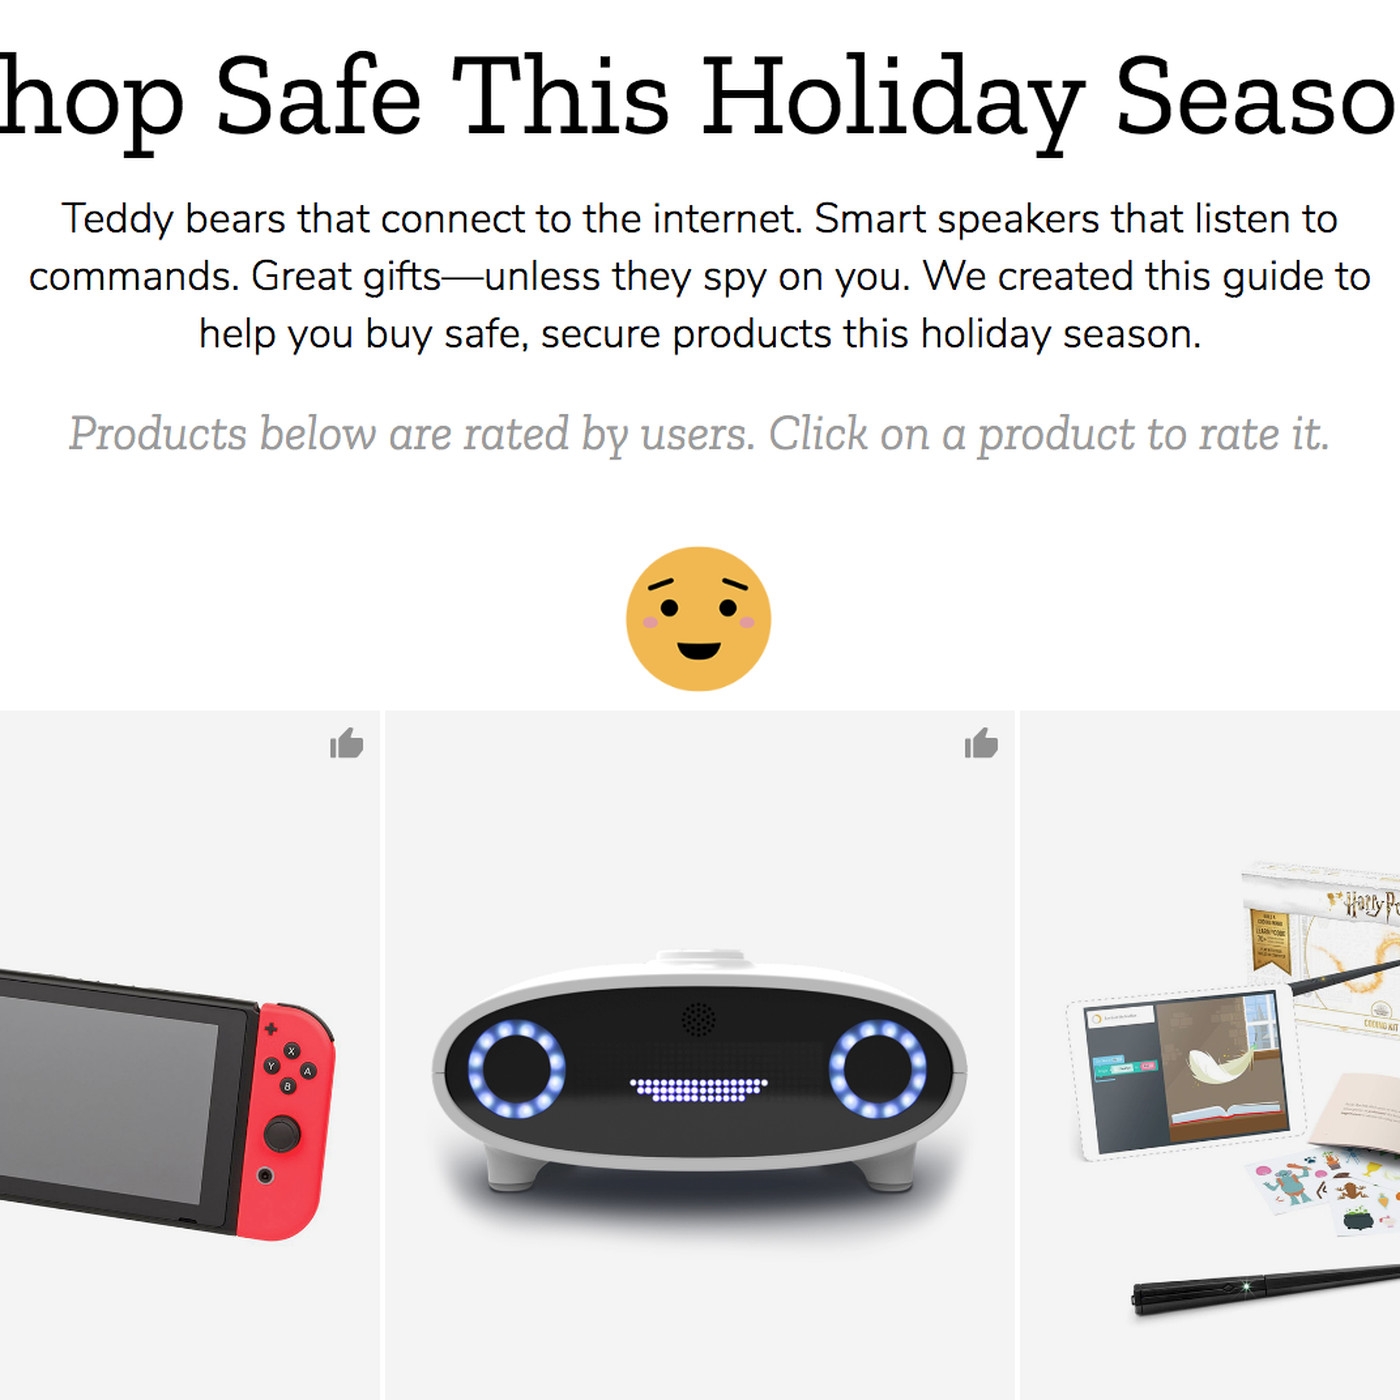 theverge.com - Shannon Liao - Mozilla releases privacy report on which holiday gadgets are too creepy